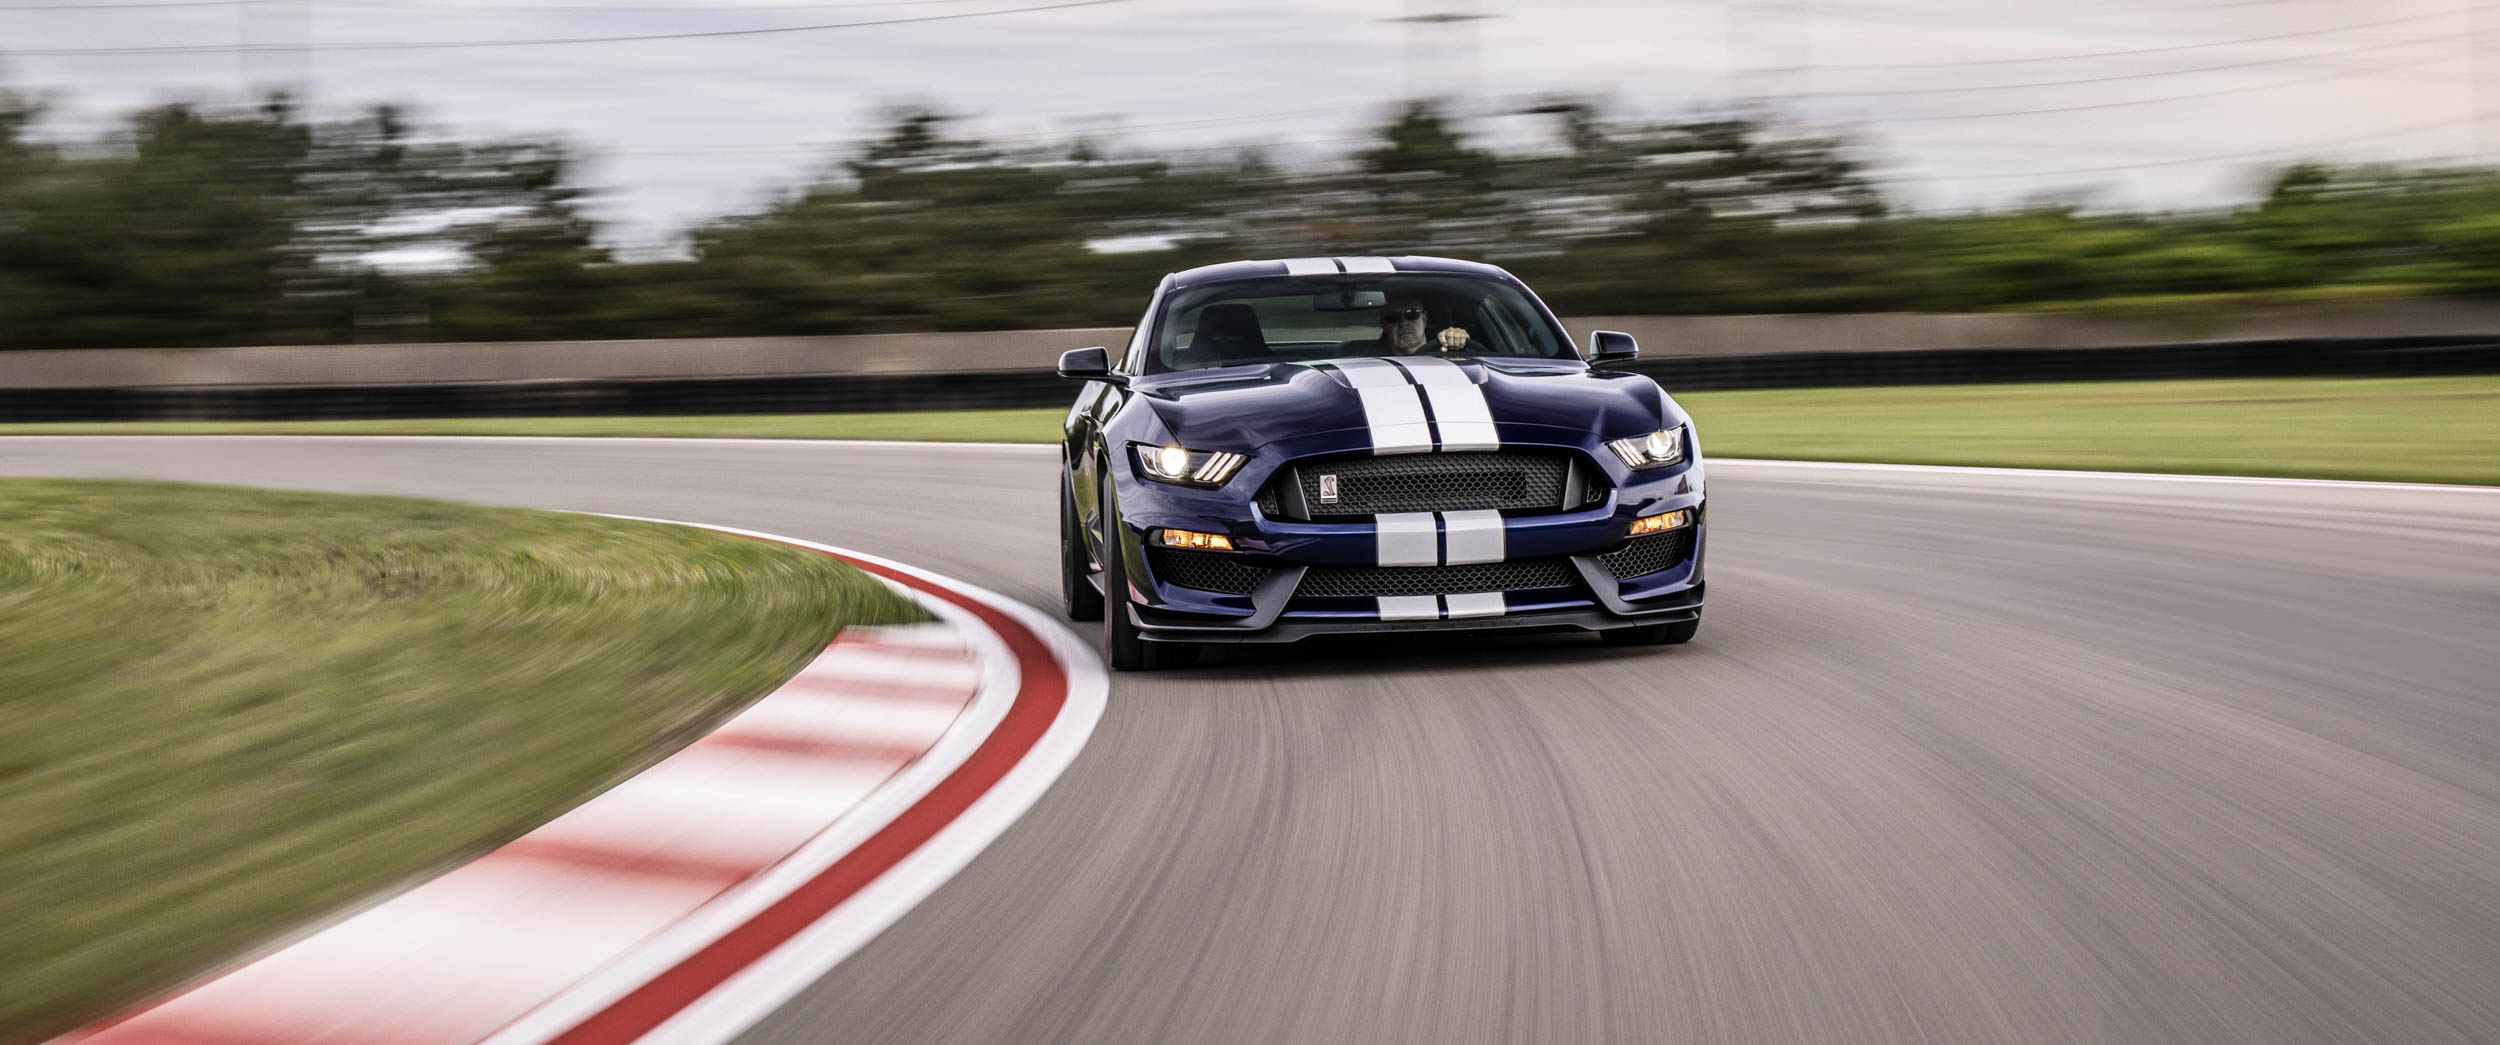 New 2019 Shelby GT350 front